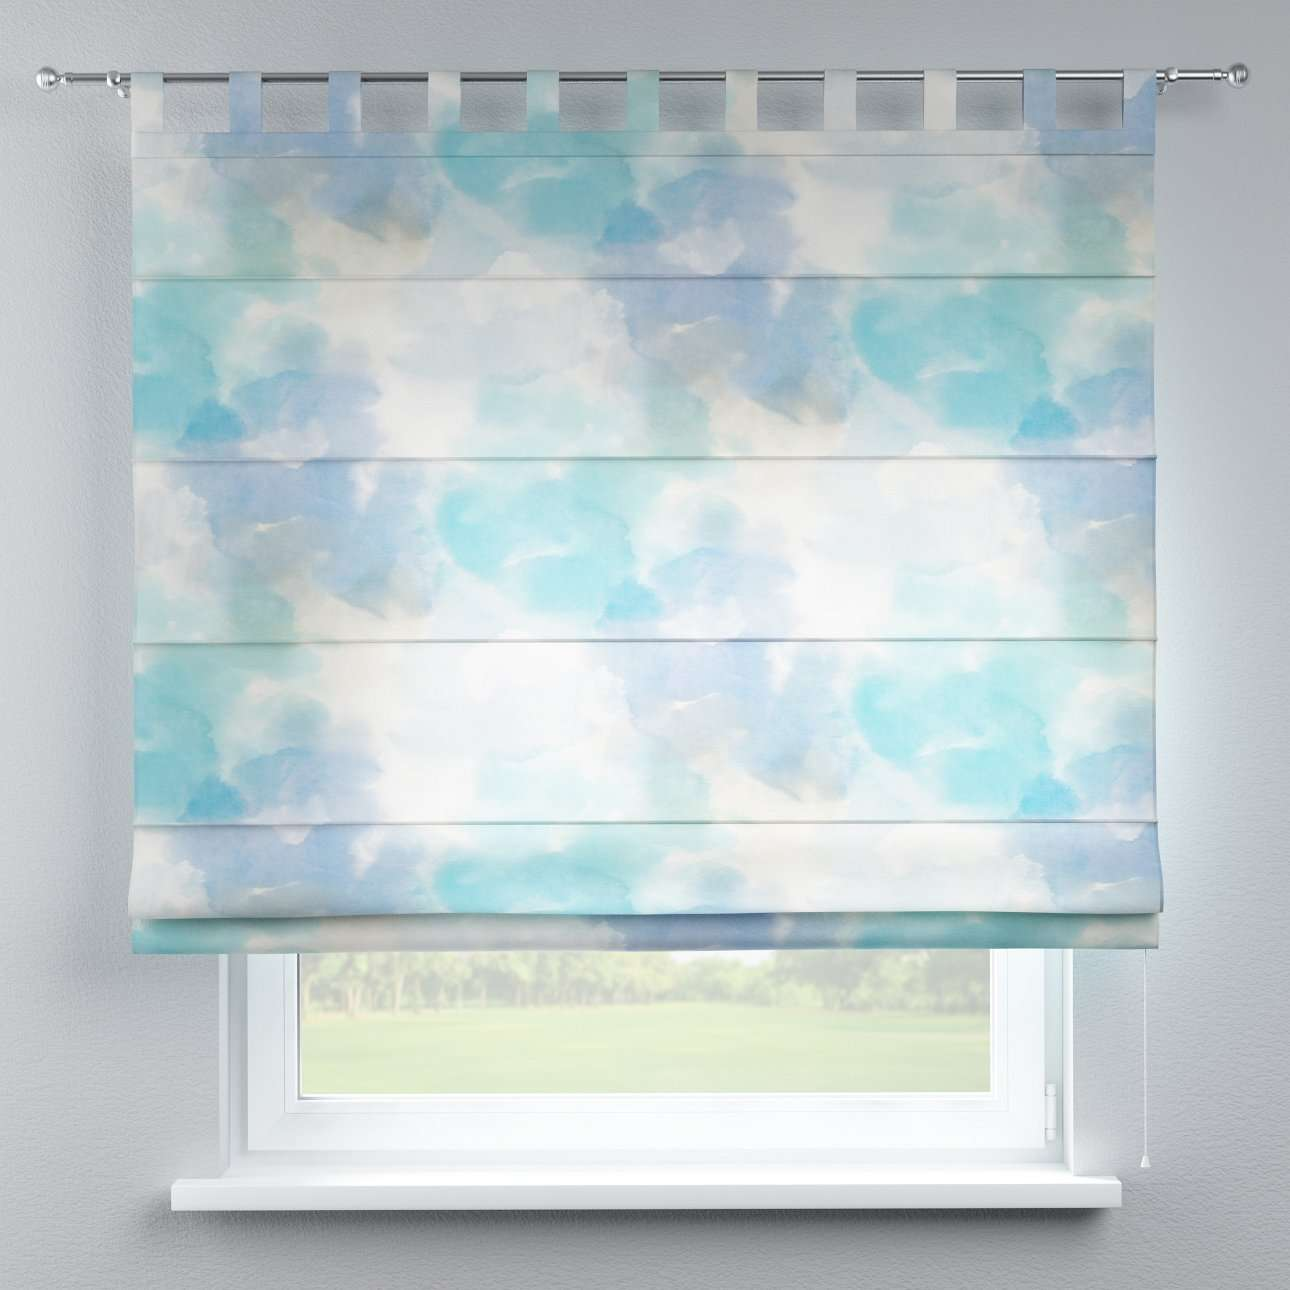 Verona tab top roman blind 80 × 170 cm (31.5 × 67 inch) in collection Aquarelle, fabric: 140-67